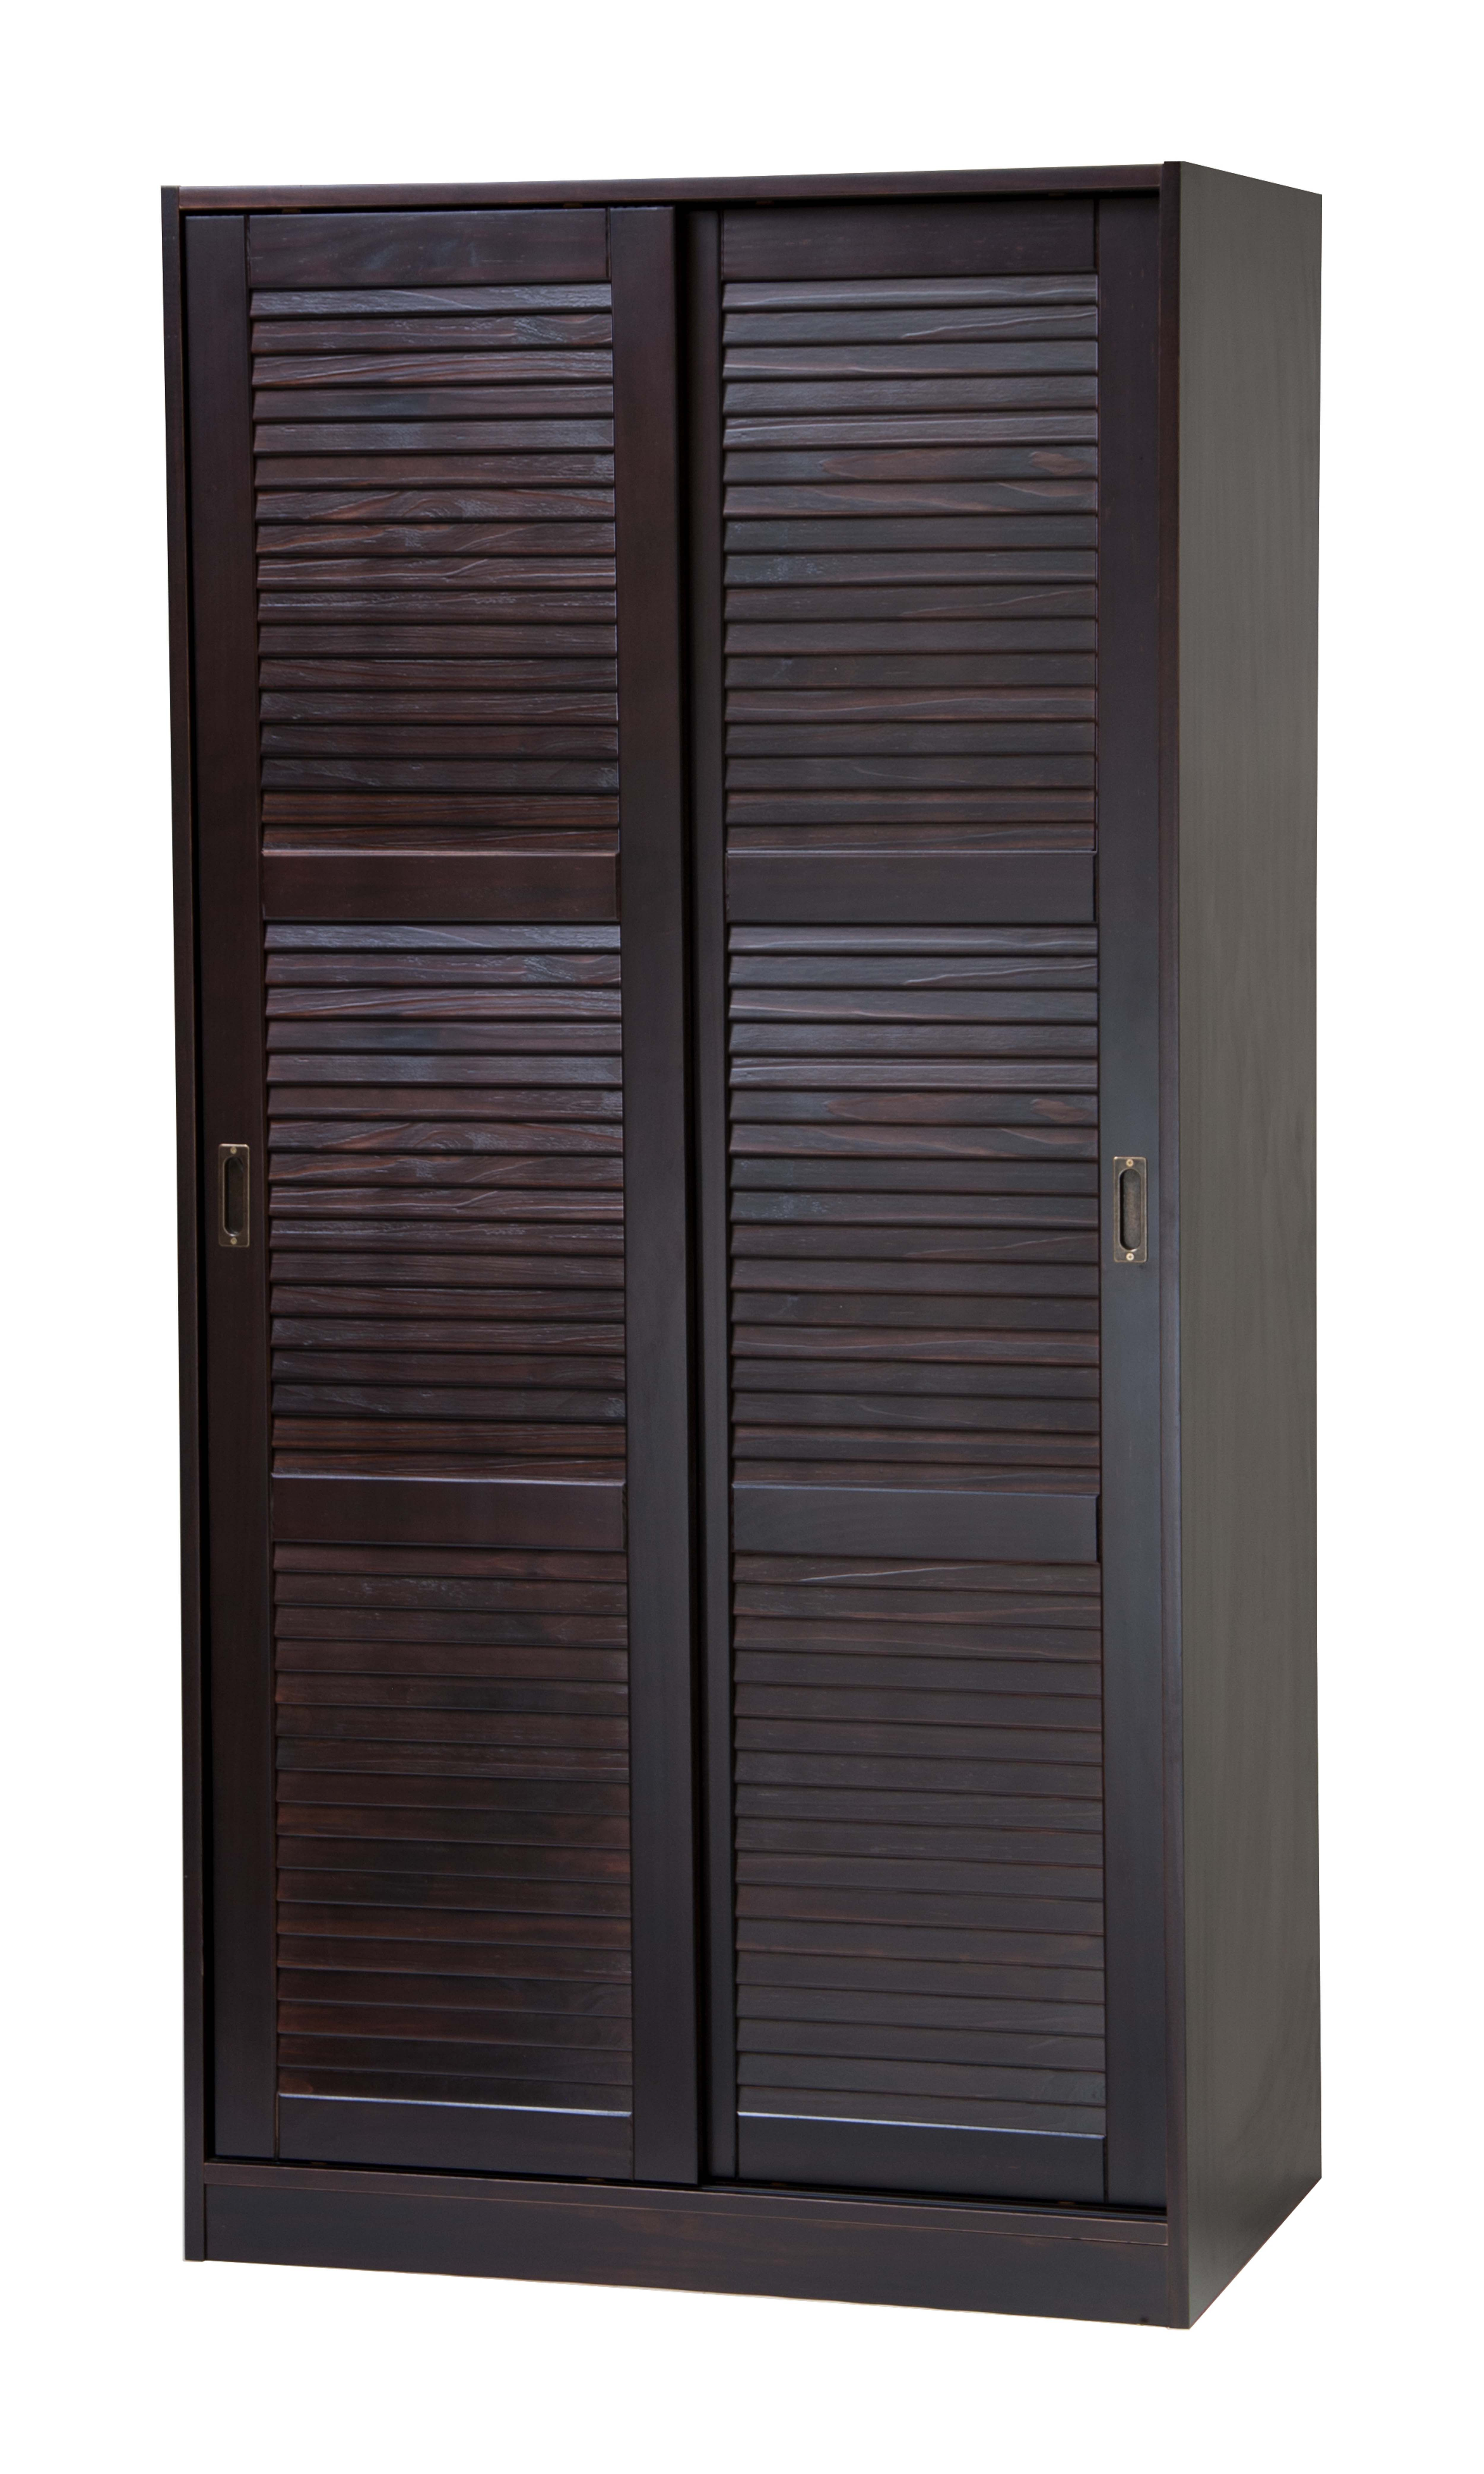 Lowest Price On Palace Imports 2 Sliding Door Solid Wood Wardrobe/Closet/ Armoire